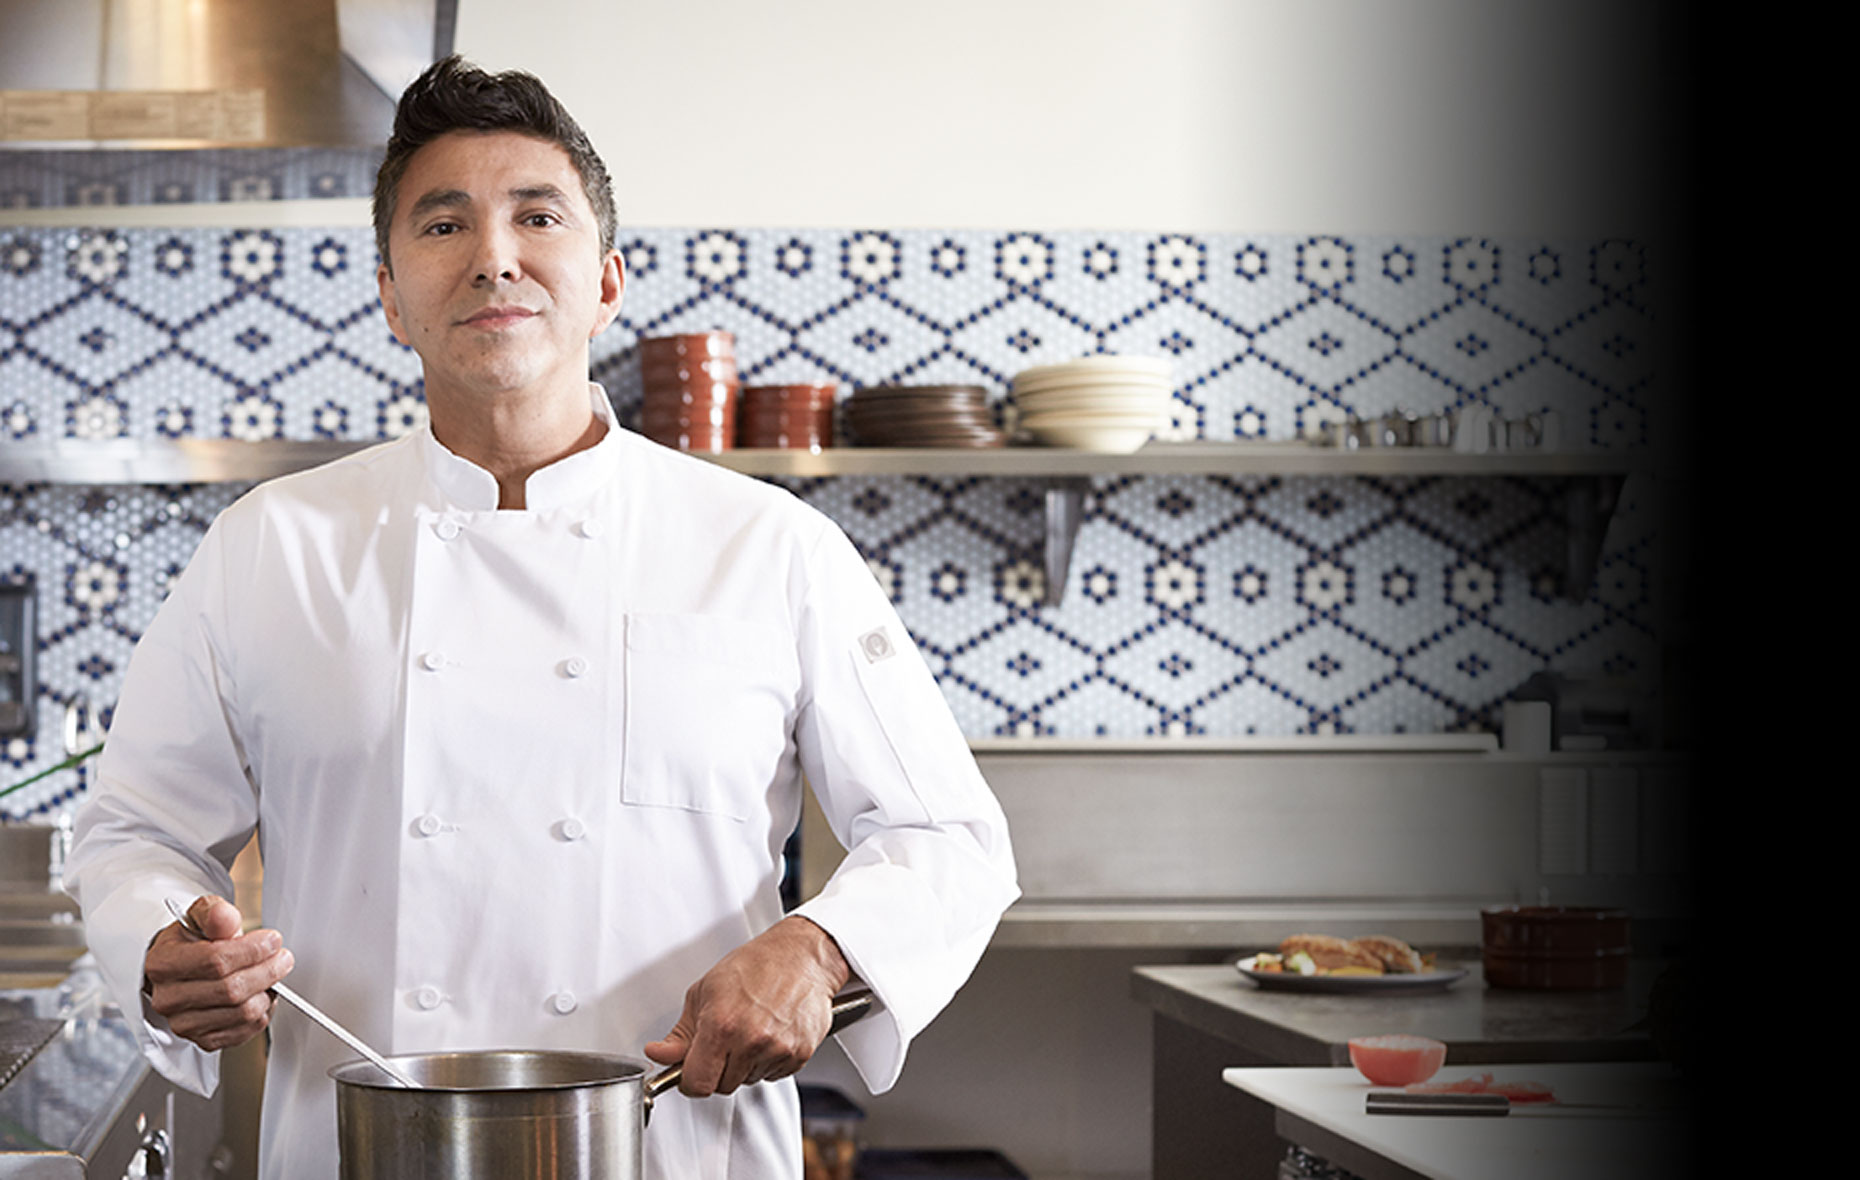 Chef in ChefWorks™ white Signature Chef coat in a kitchen